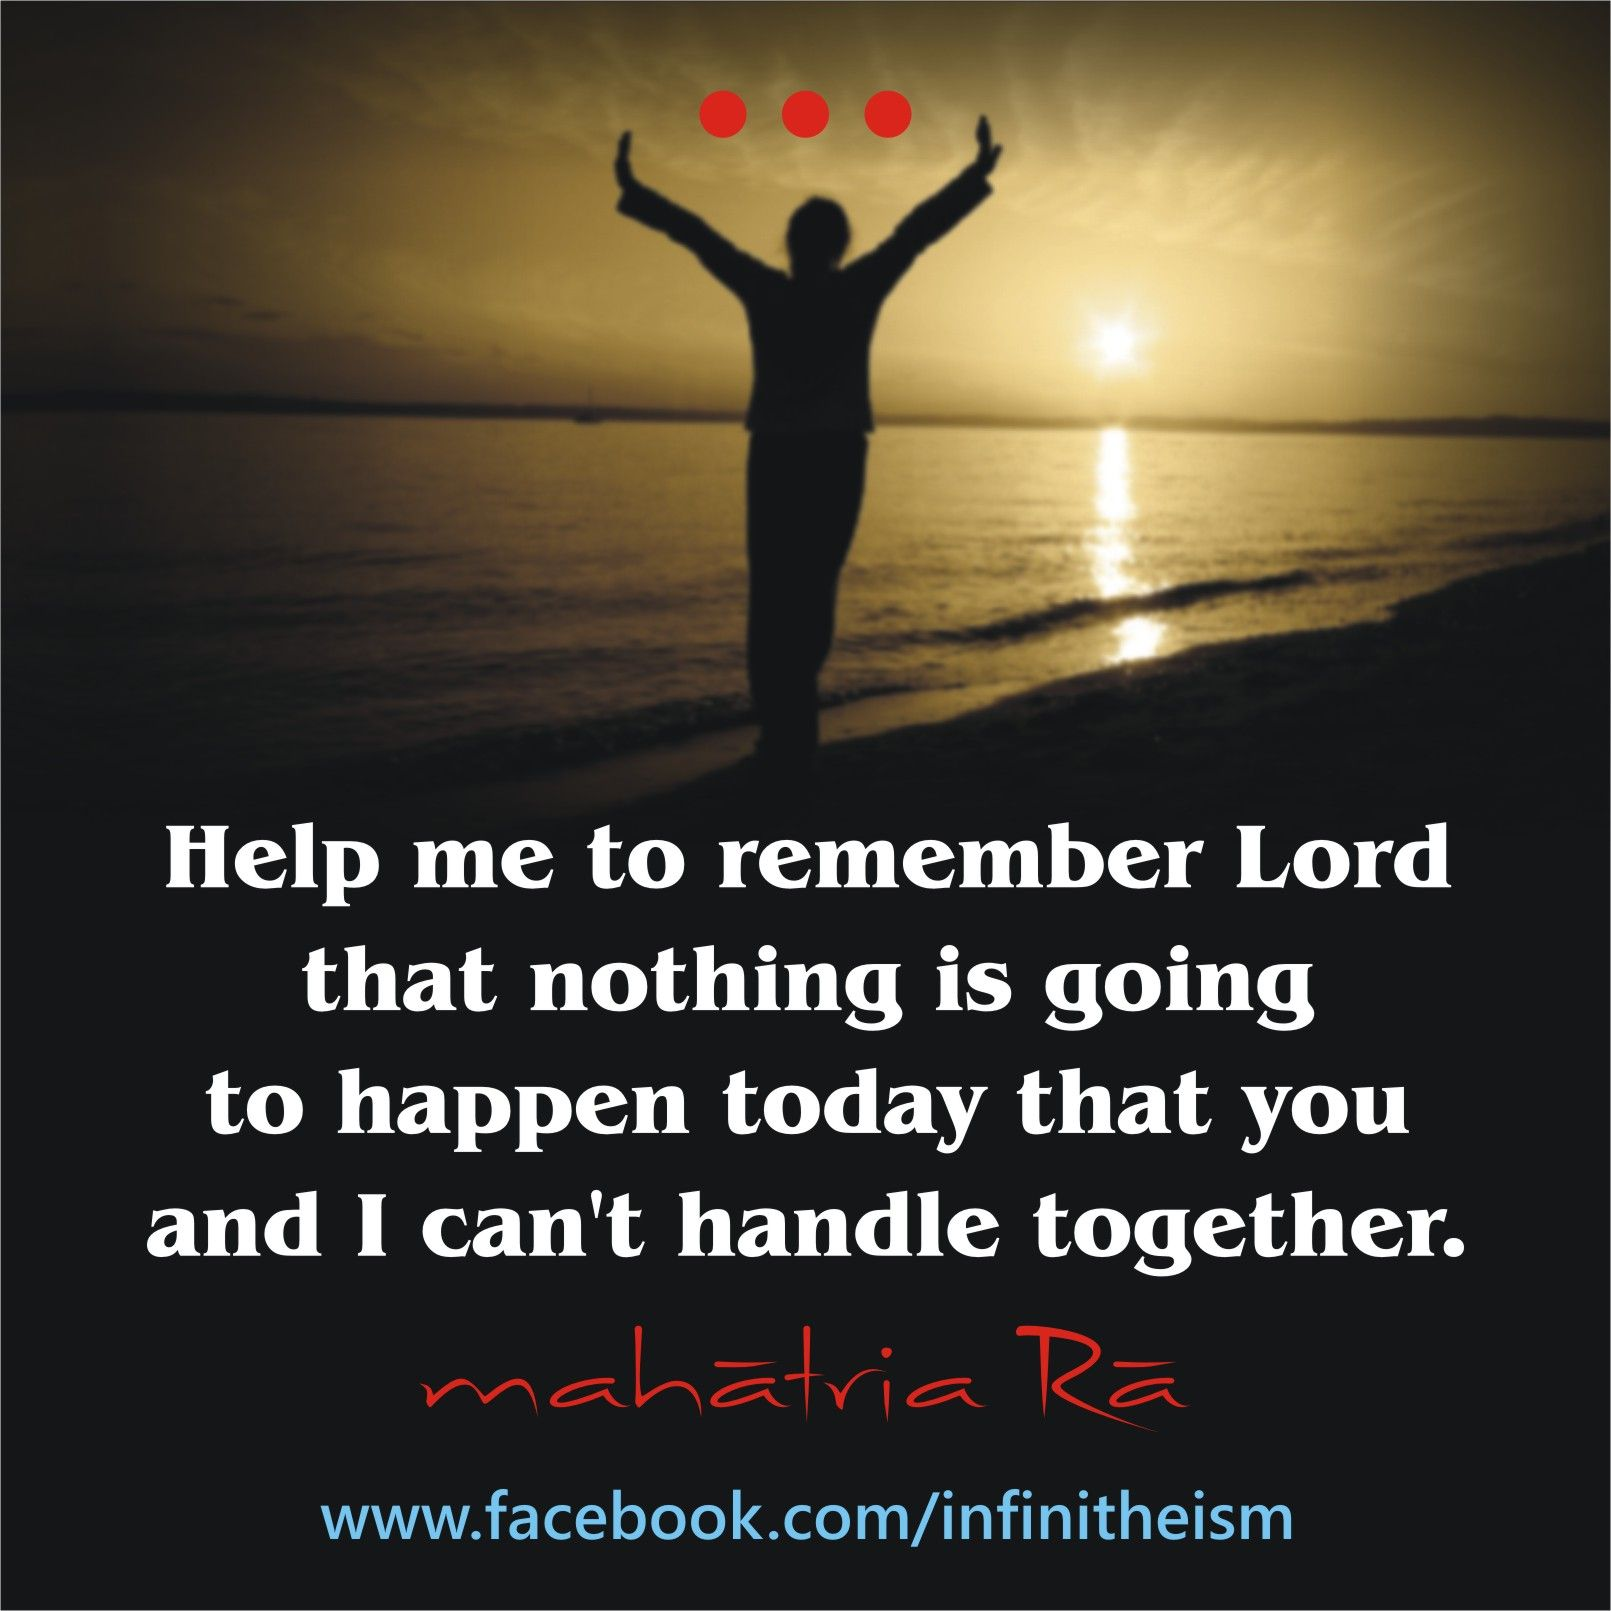 Help me to remember Lord, that nothing is going to happen